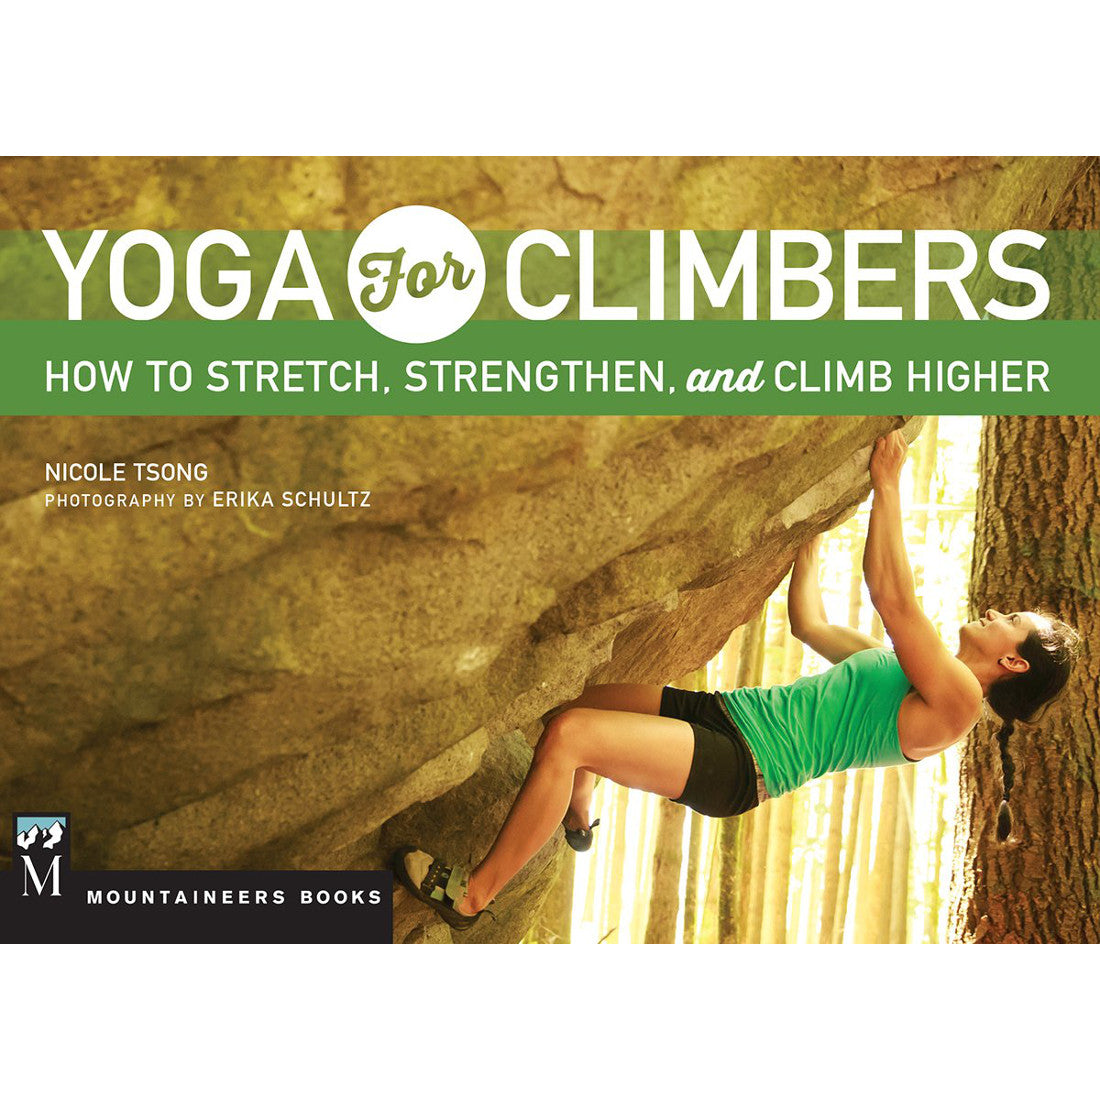 Yoga for Climbers